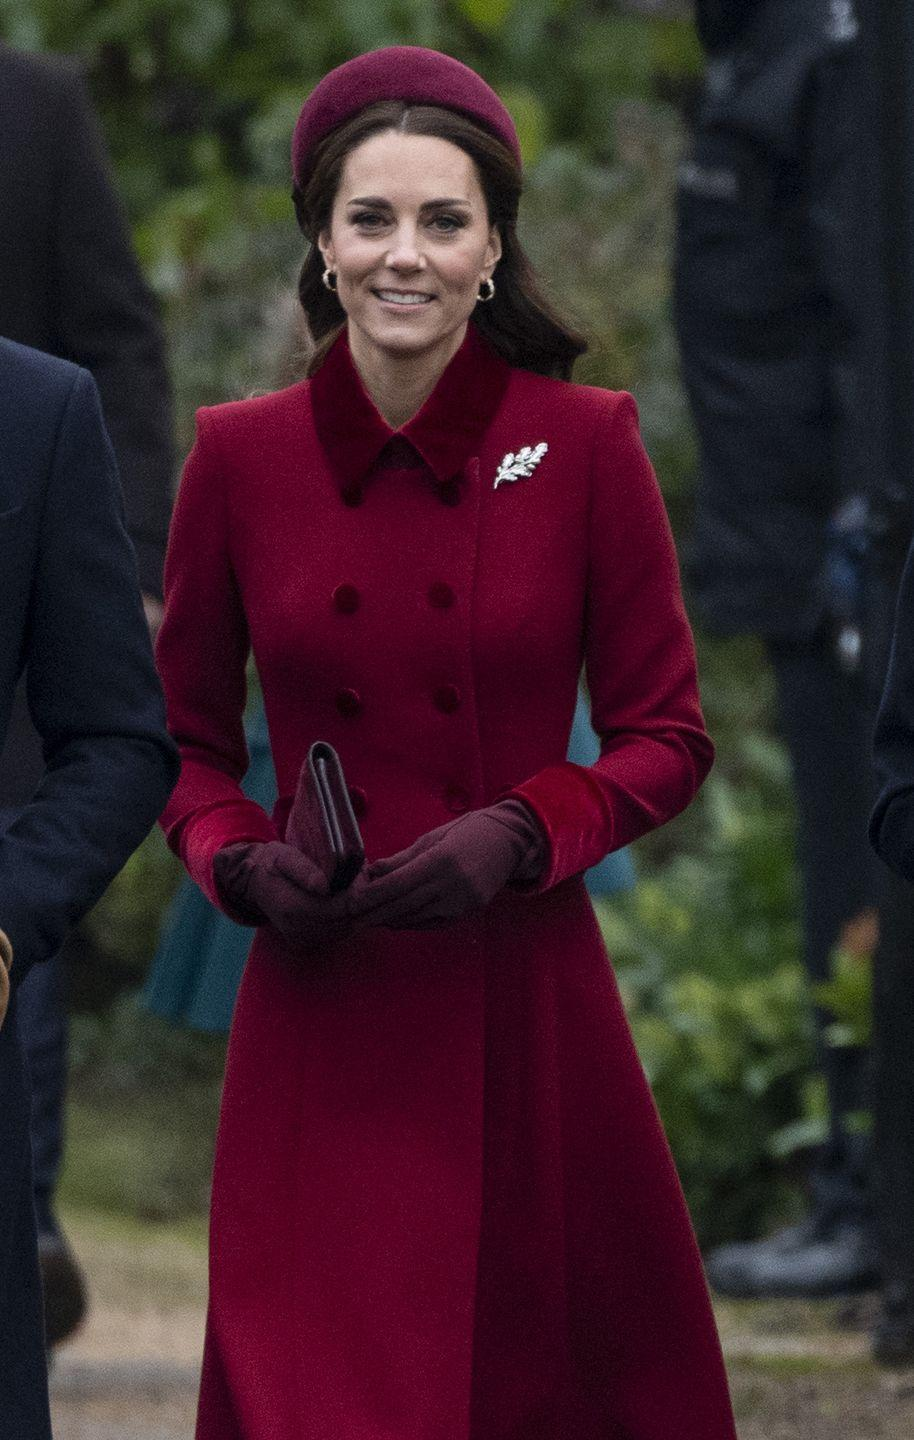 <p>Burgundy must be a royal fave, 'cause Kate wore this merlot coat and matching hat for Christmas in Sandringham. P.S. Those gloves. I want. </p>